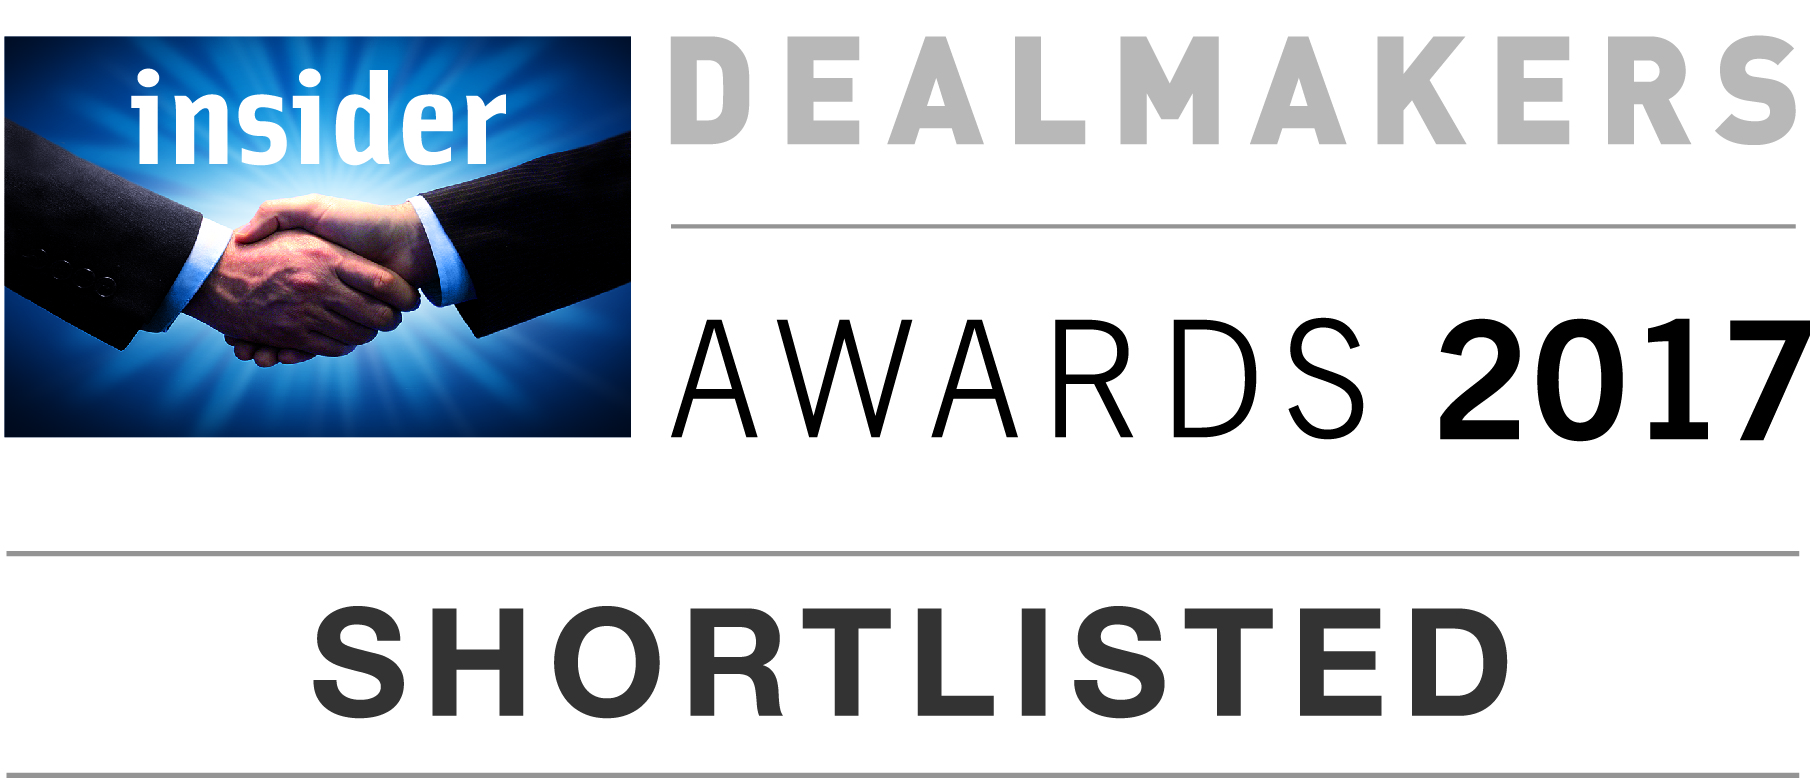 Insider dealmakers awards 2017 - shortlisted